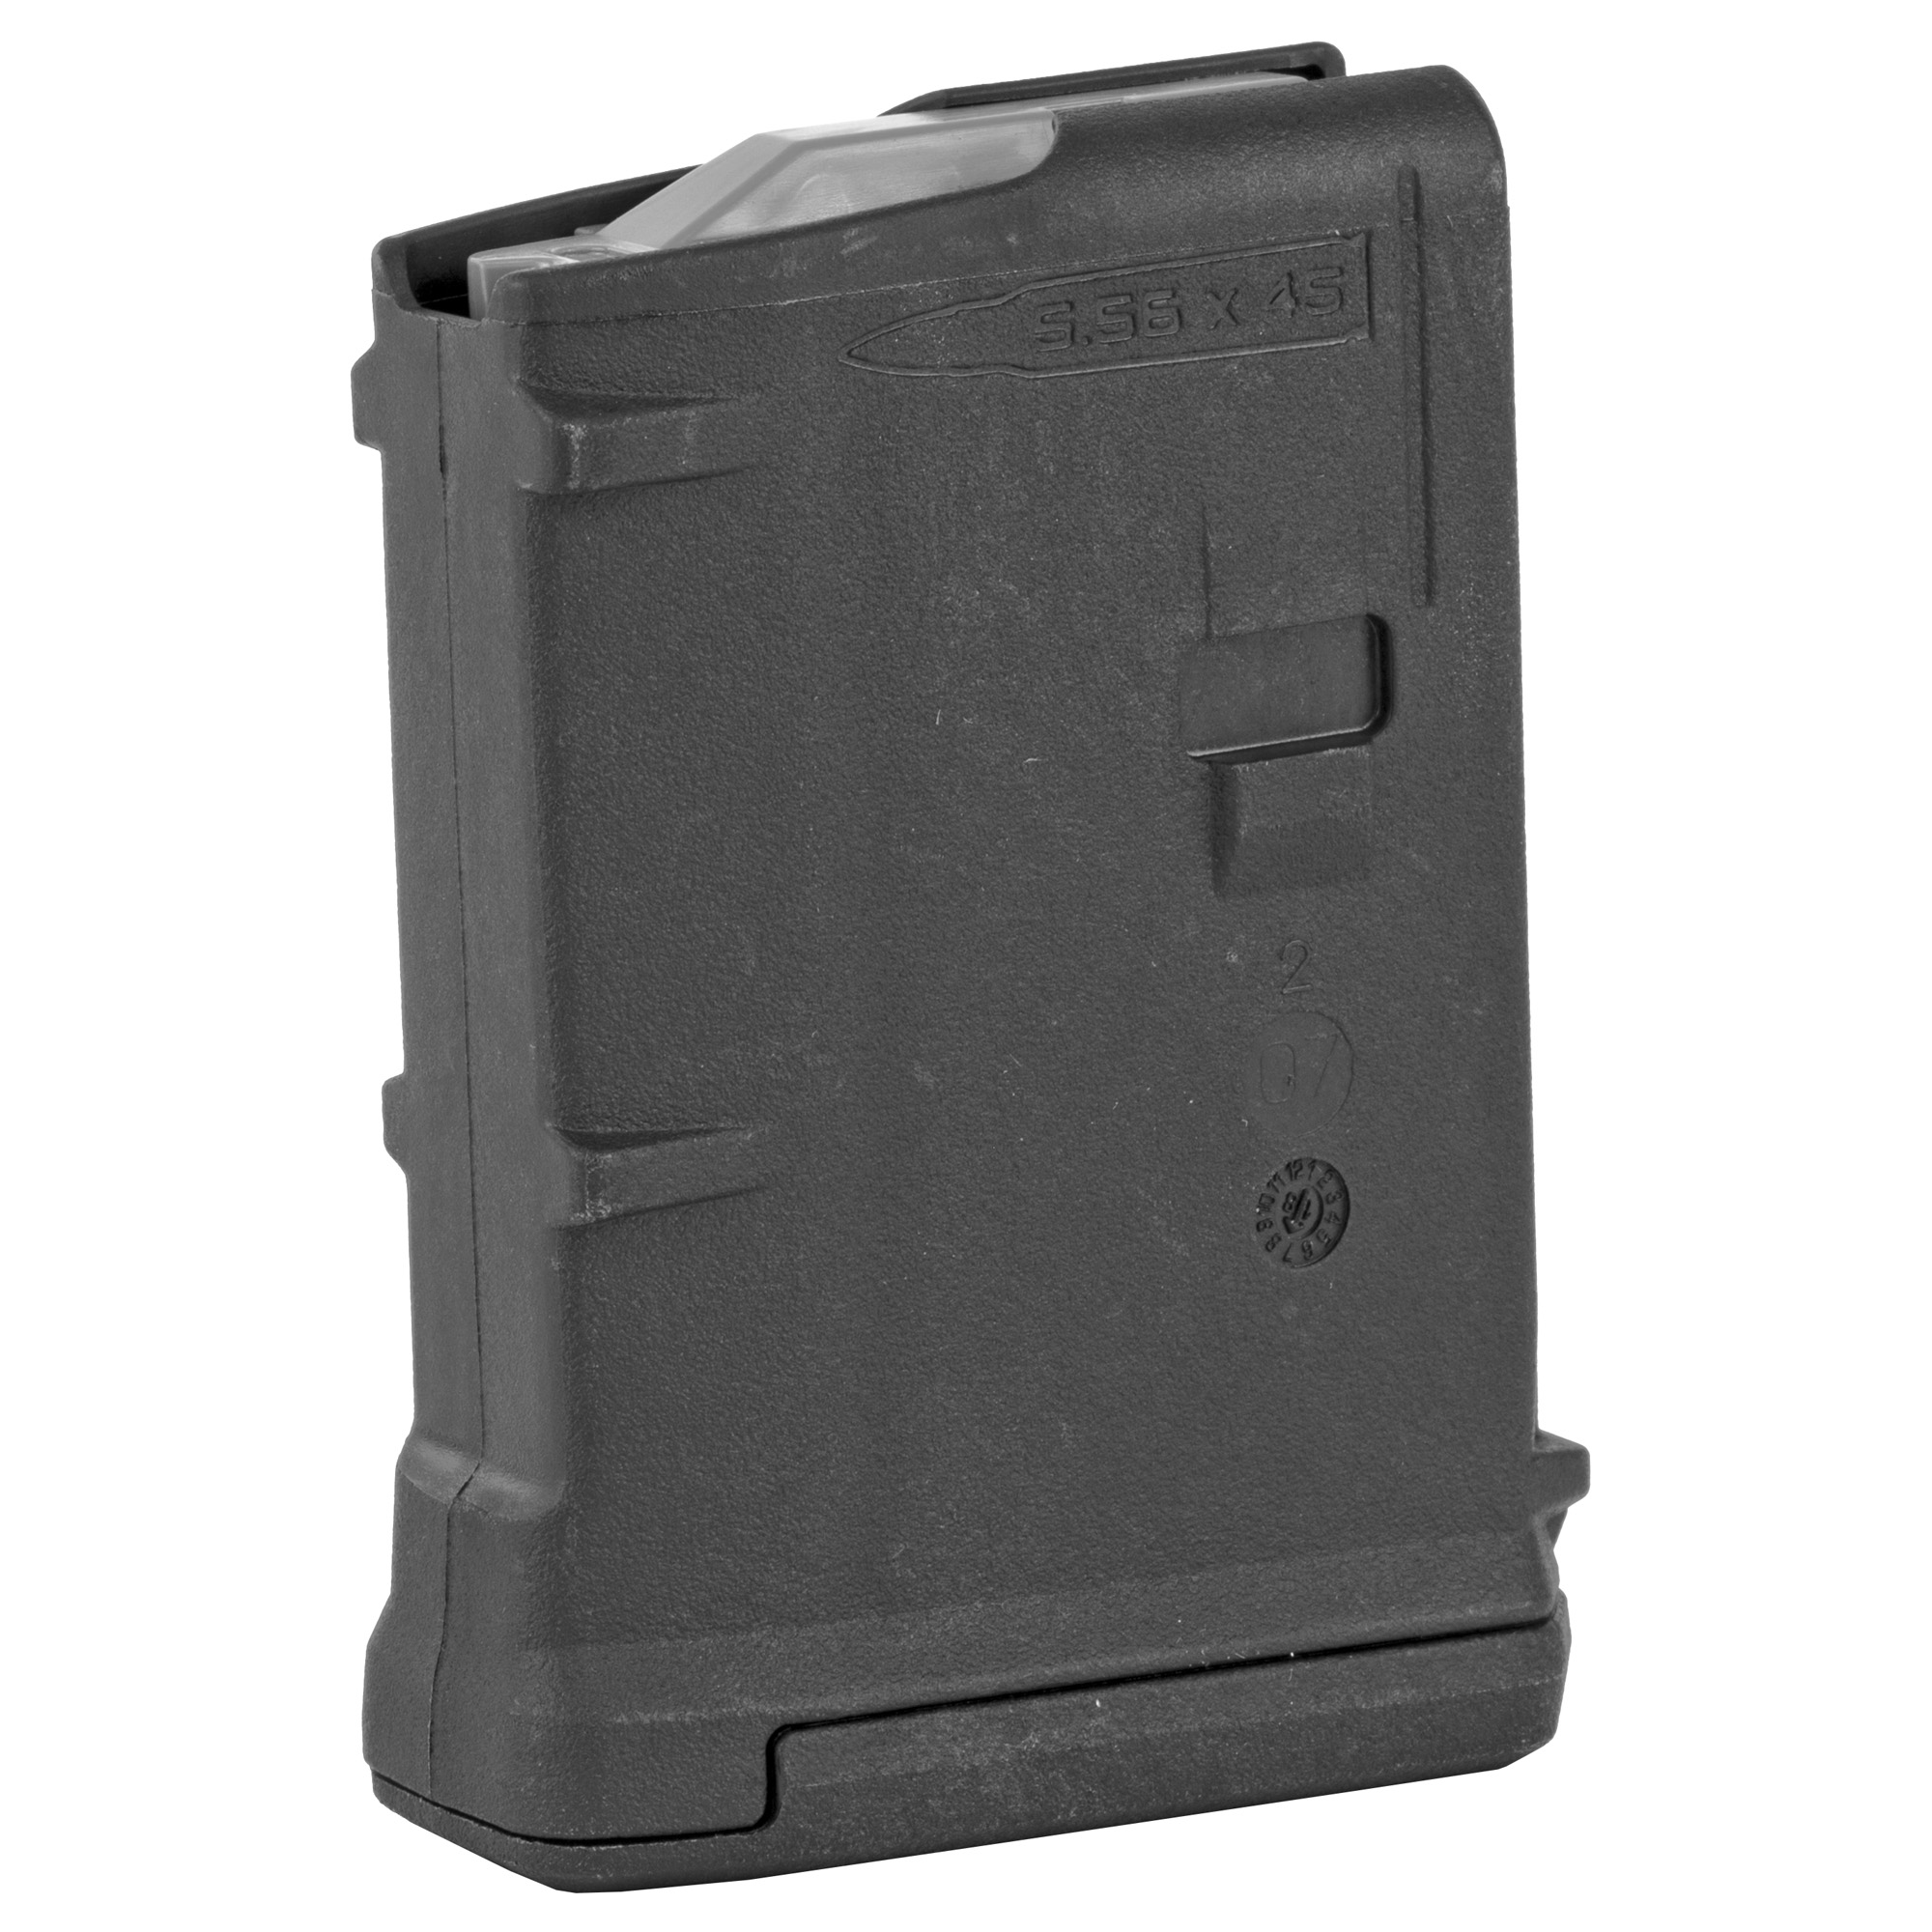 """The PMAG 10 GEN M3 is a 10-round 5.56x45 NATO (.223 Remington) polymer magazine for AR15/M4 compatible weapons. Incorporating new material technology and manufacturing processes for enhanced strength"""" durability"""" and reliability"""" the PMAG 10 provides next-generation performance for those needing lower profile magazines. While the GEN M3 is optimized for Colt-spec AR15/M4 platforms"""" modified internal and external geometry also permits operation with a range of additional weapons such as the HK(R) 416/MR556A1/M27 IAR"""" British SA-80"""" FN(R) SCAR(TM) MK 16/16S"""" and others."""